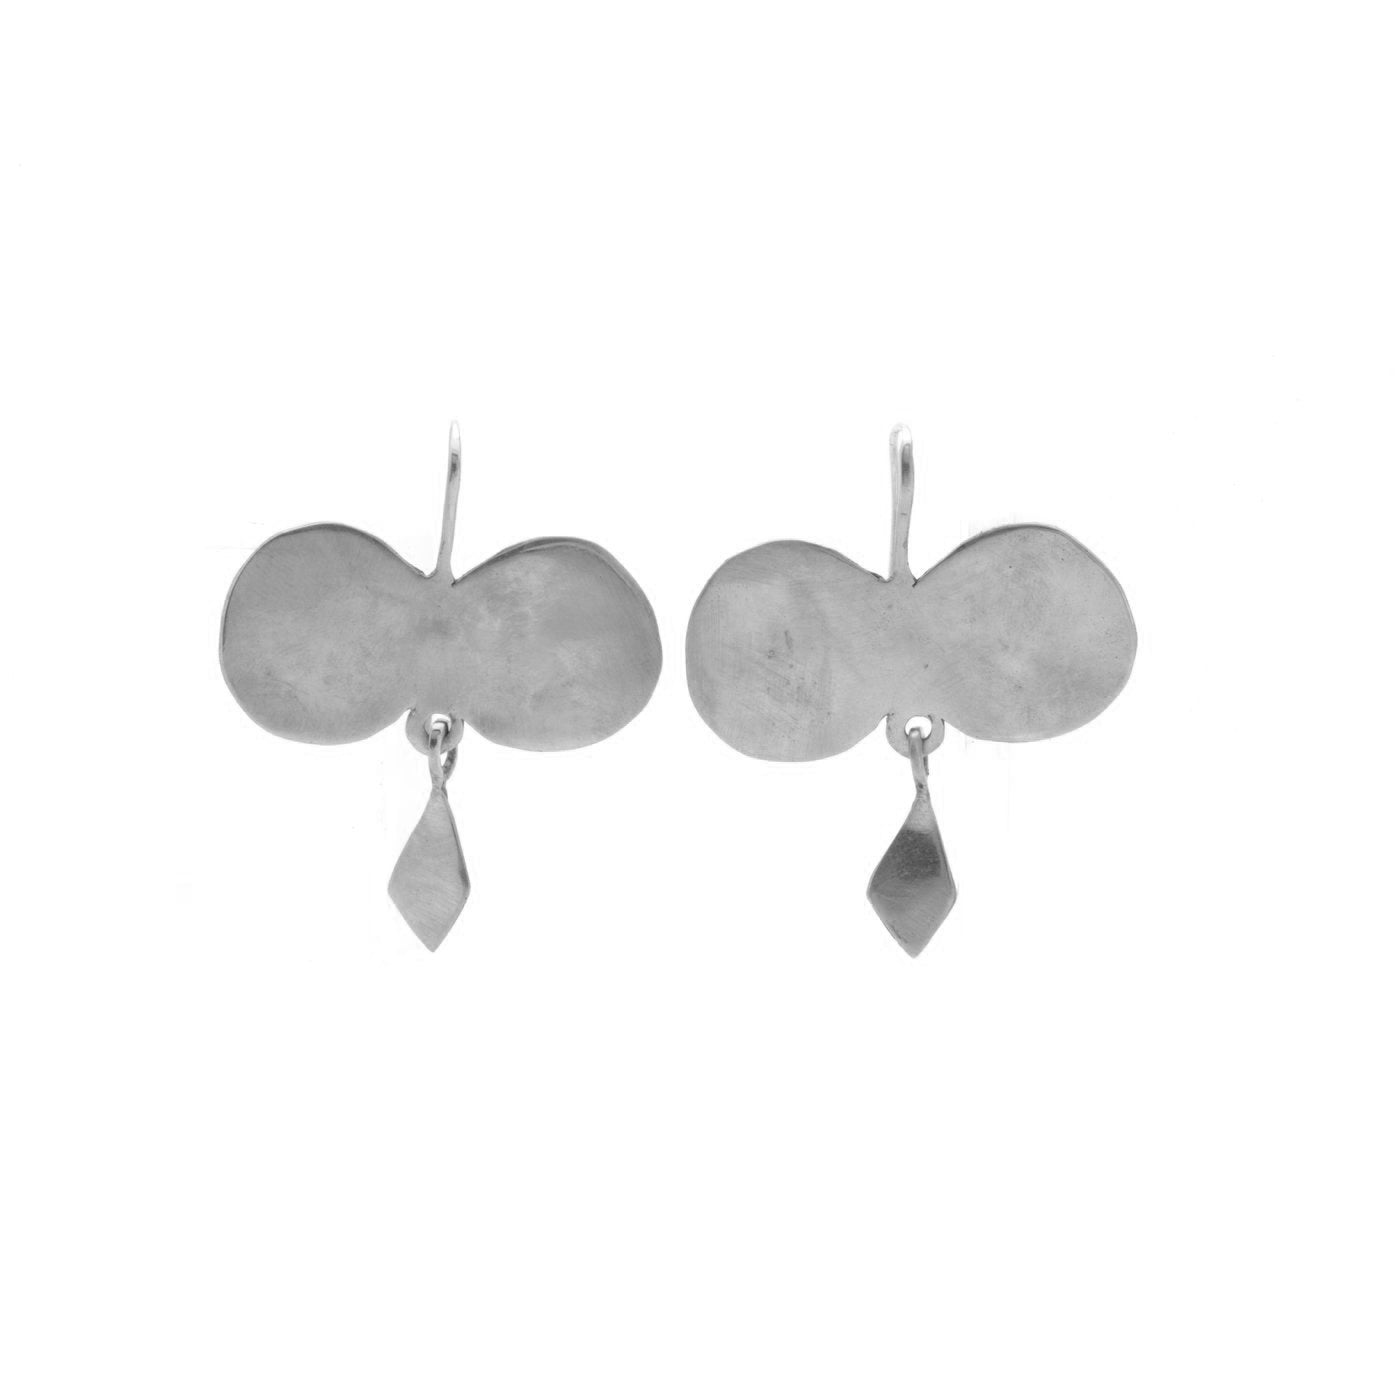 Mazcala Earrings by Ariana Boussard-Reifel for Broken English Jewelry